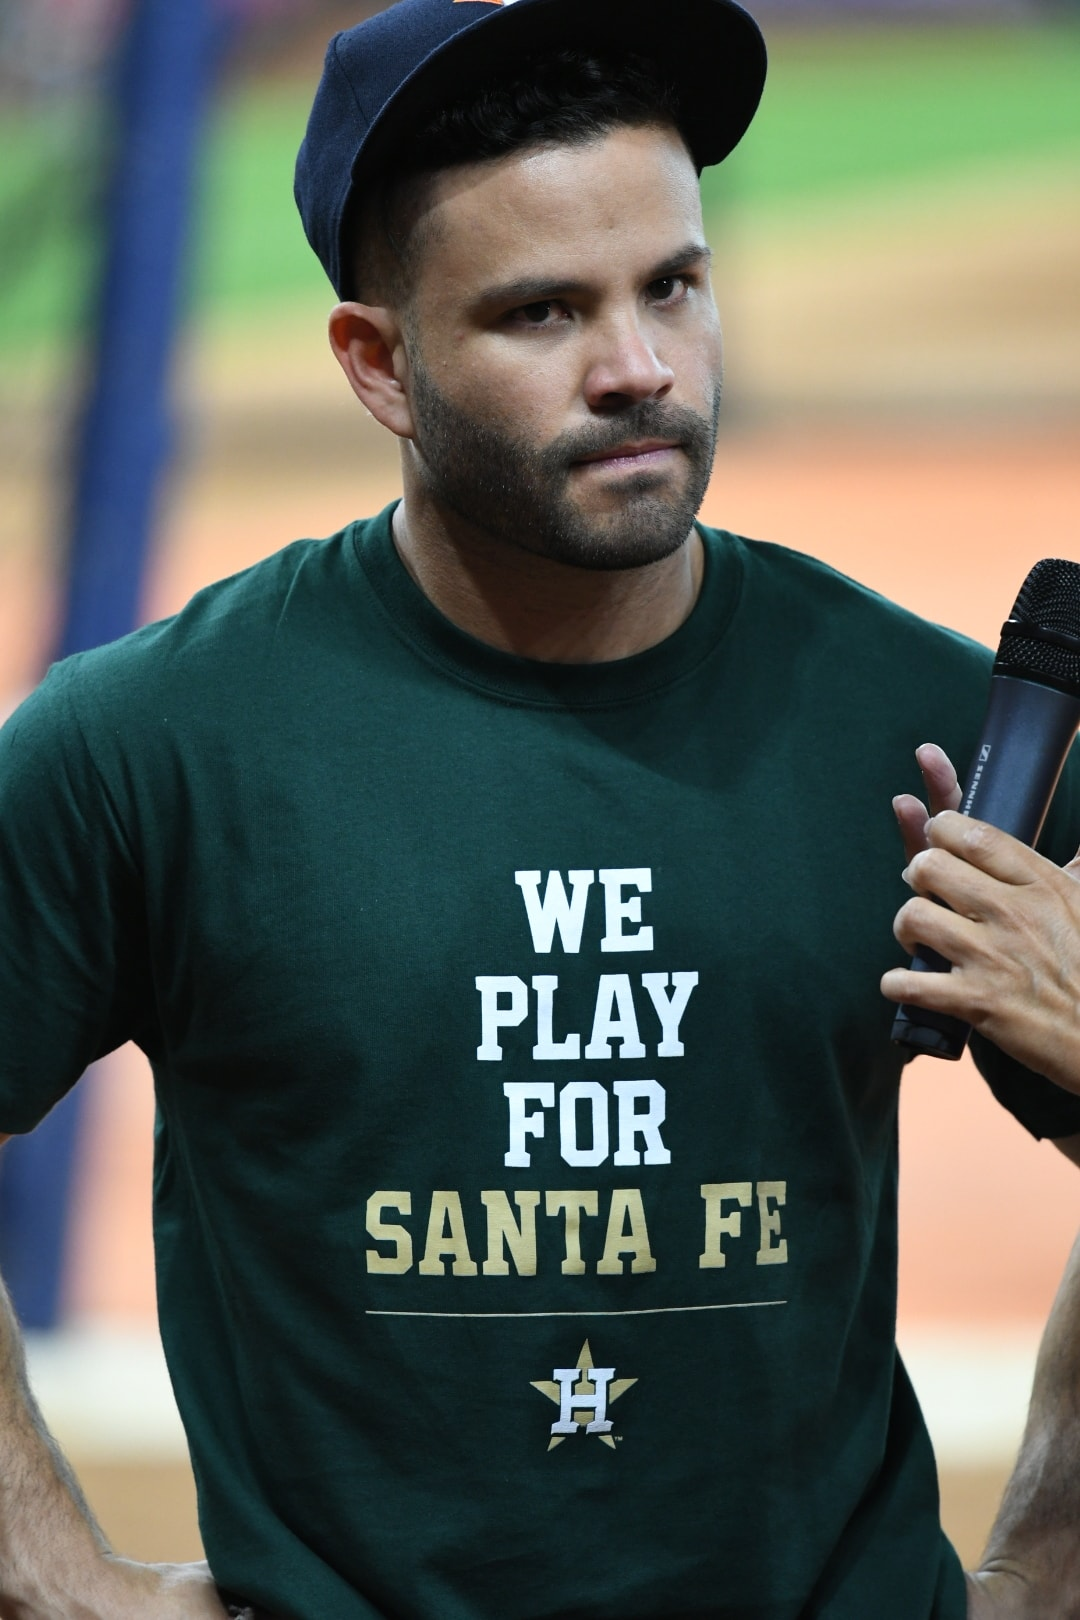 Jose Altuve, Wearing a We Play For Santa Fe shirt